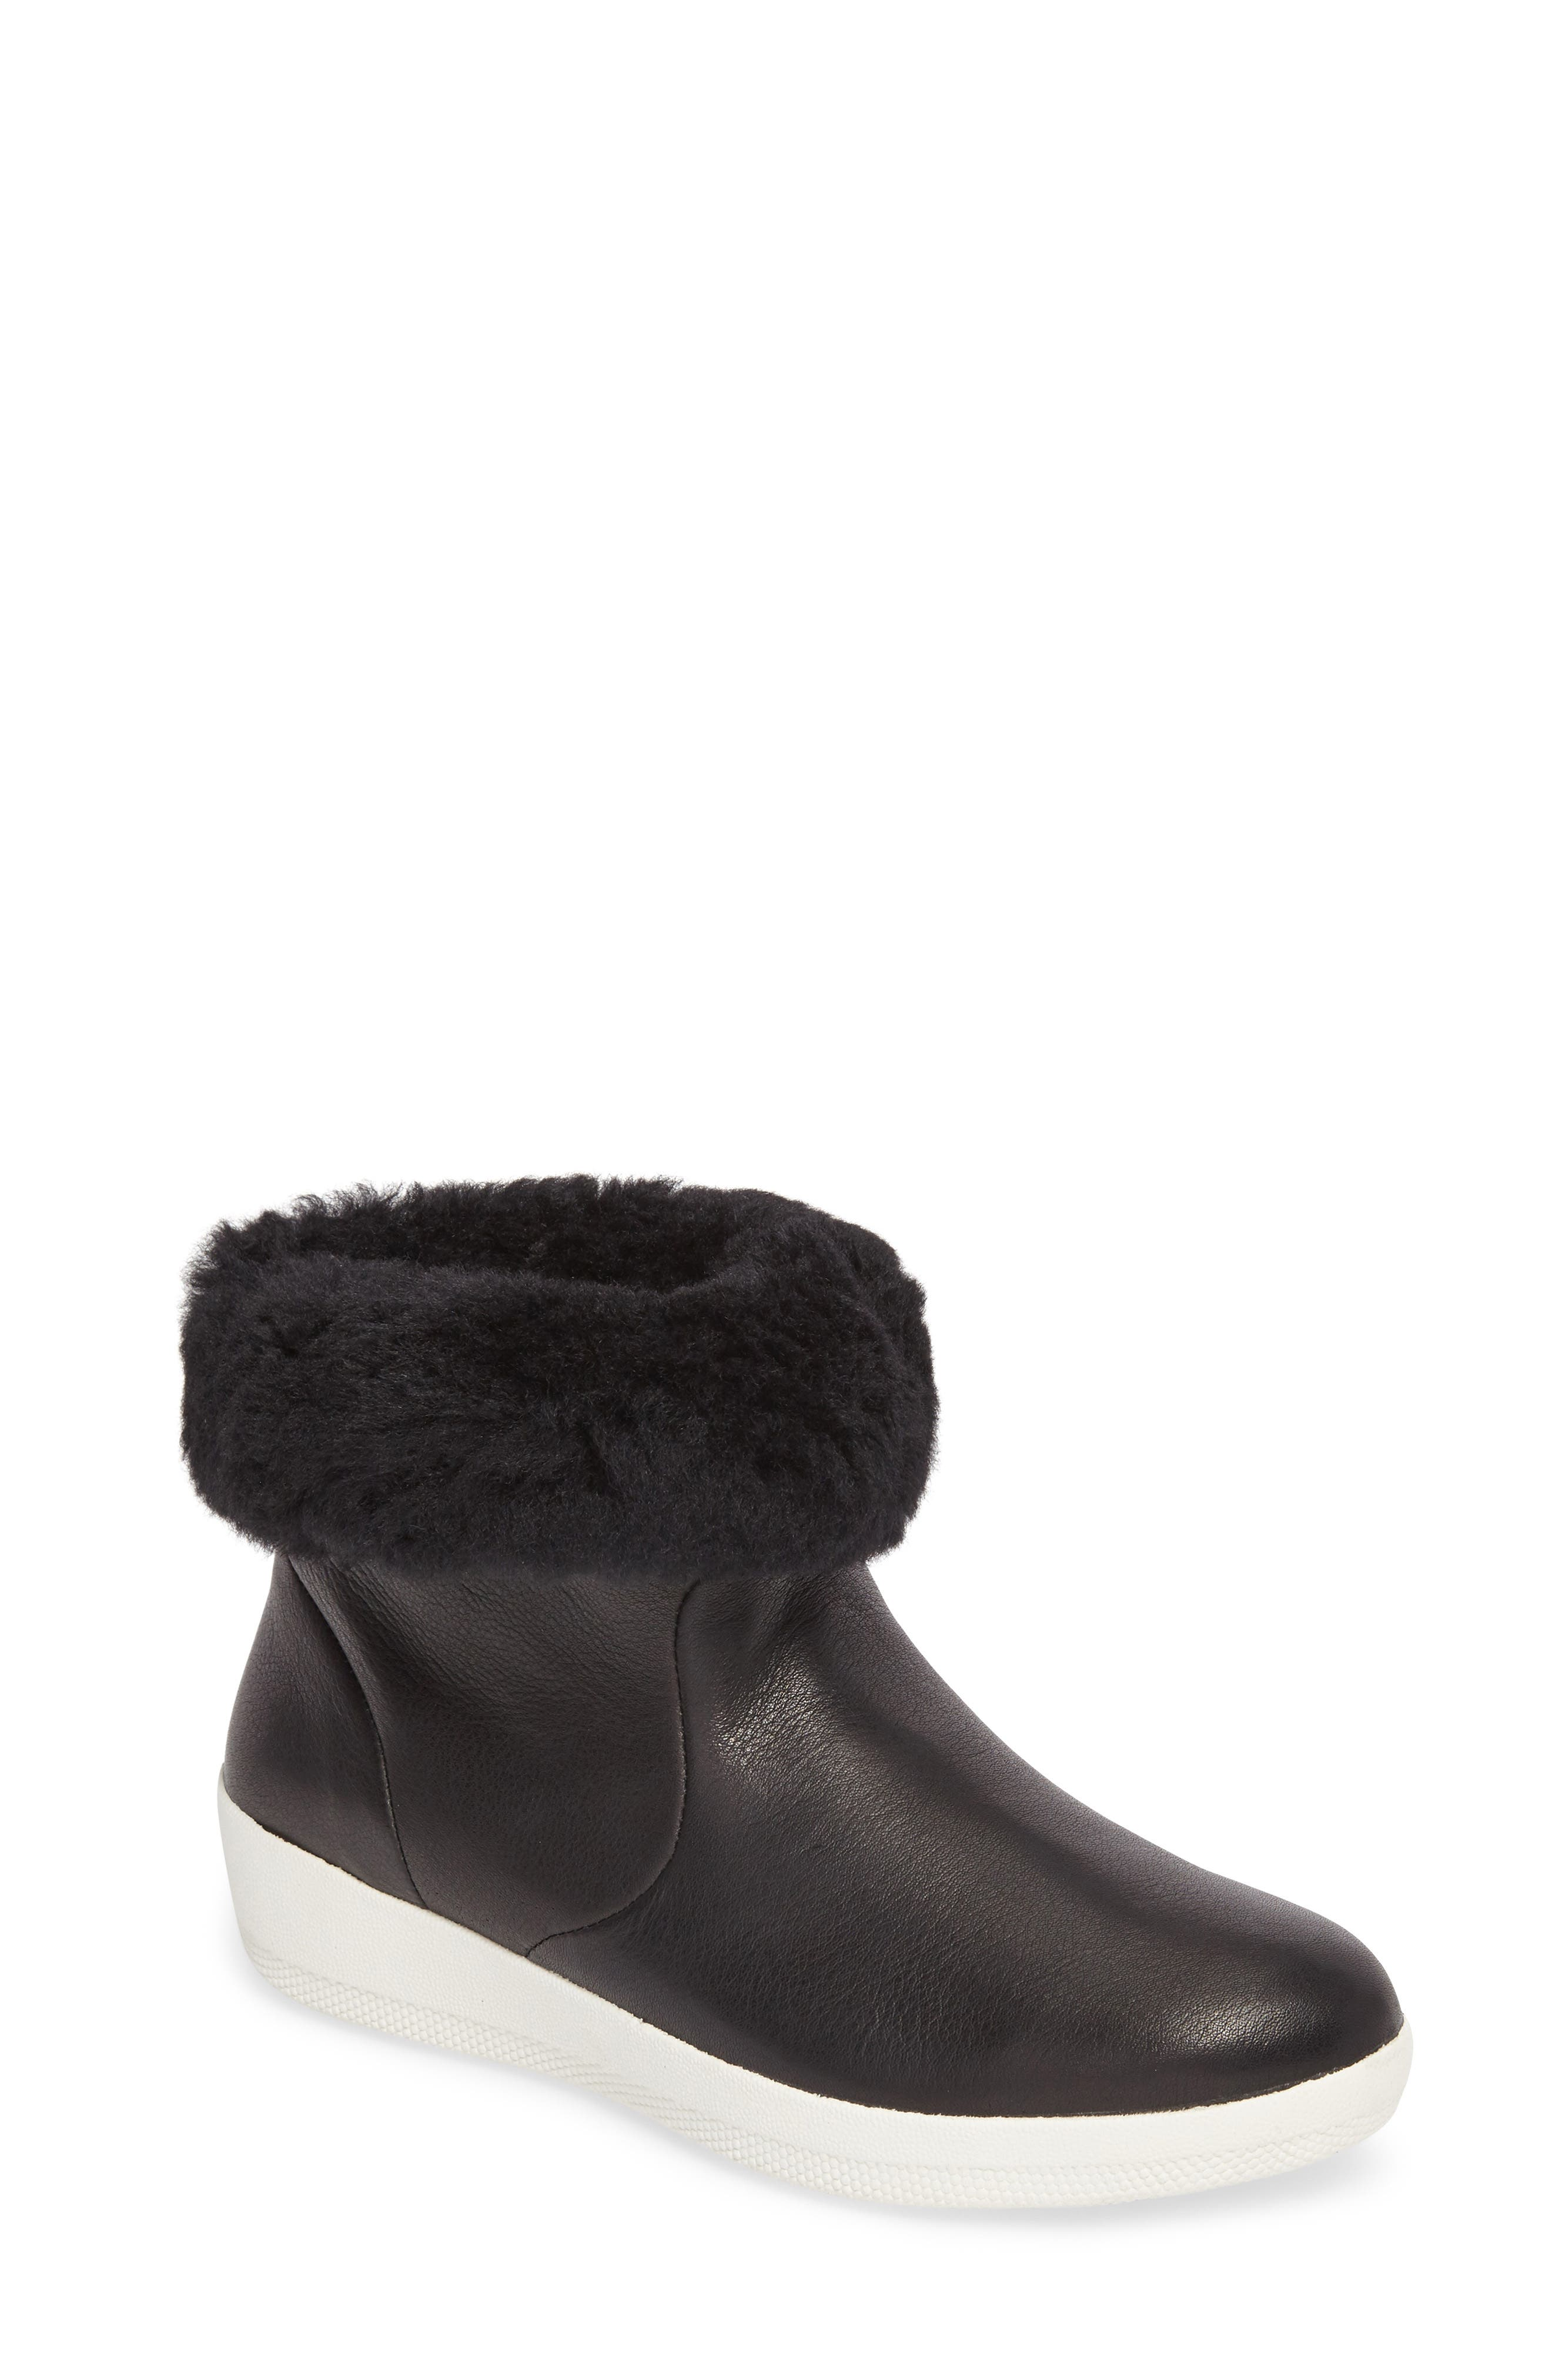 Skatebootie<sup>™</sup> with Genuine Shearling Cuff,                         Main,                         color,